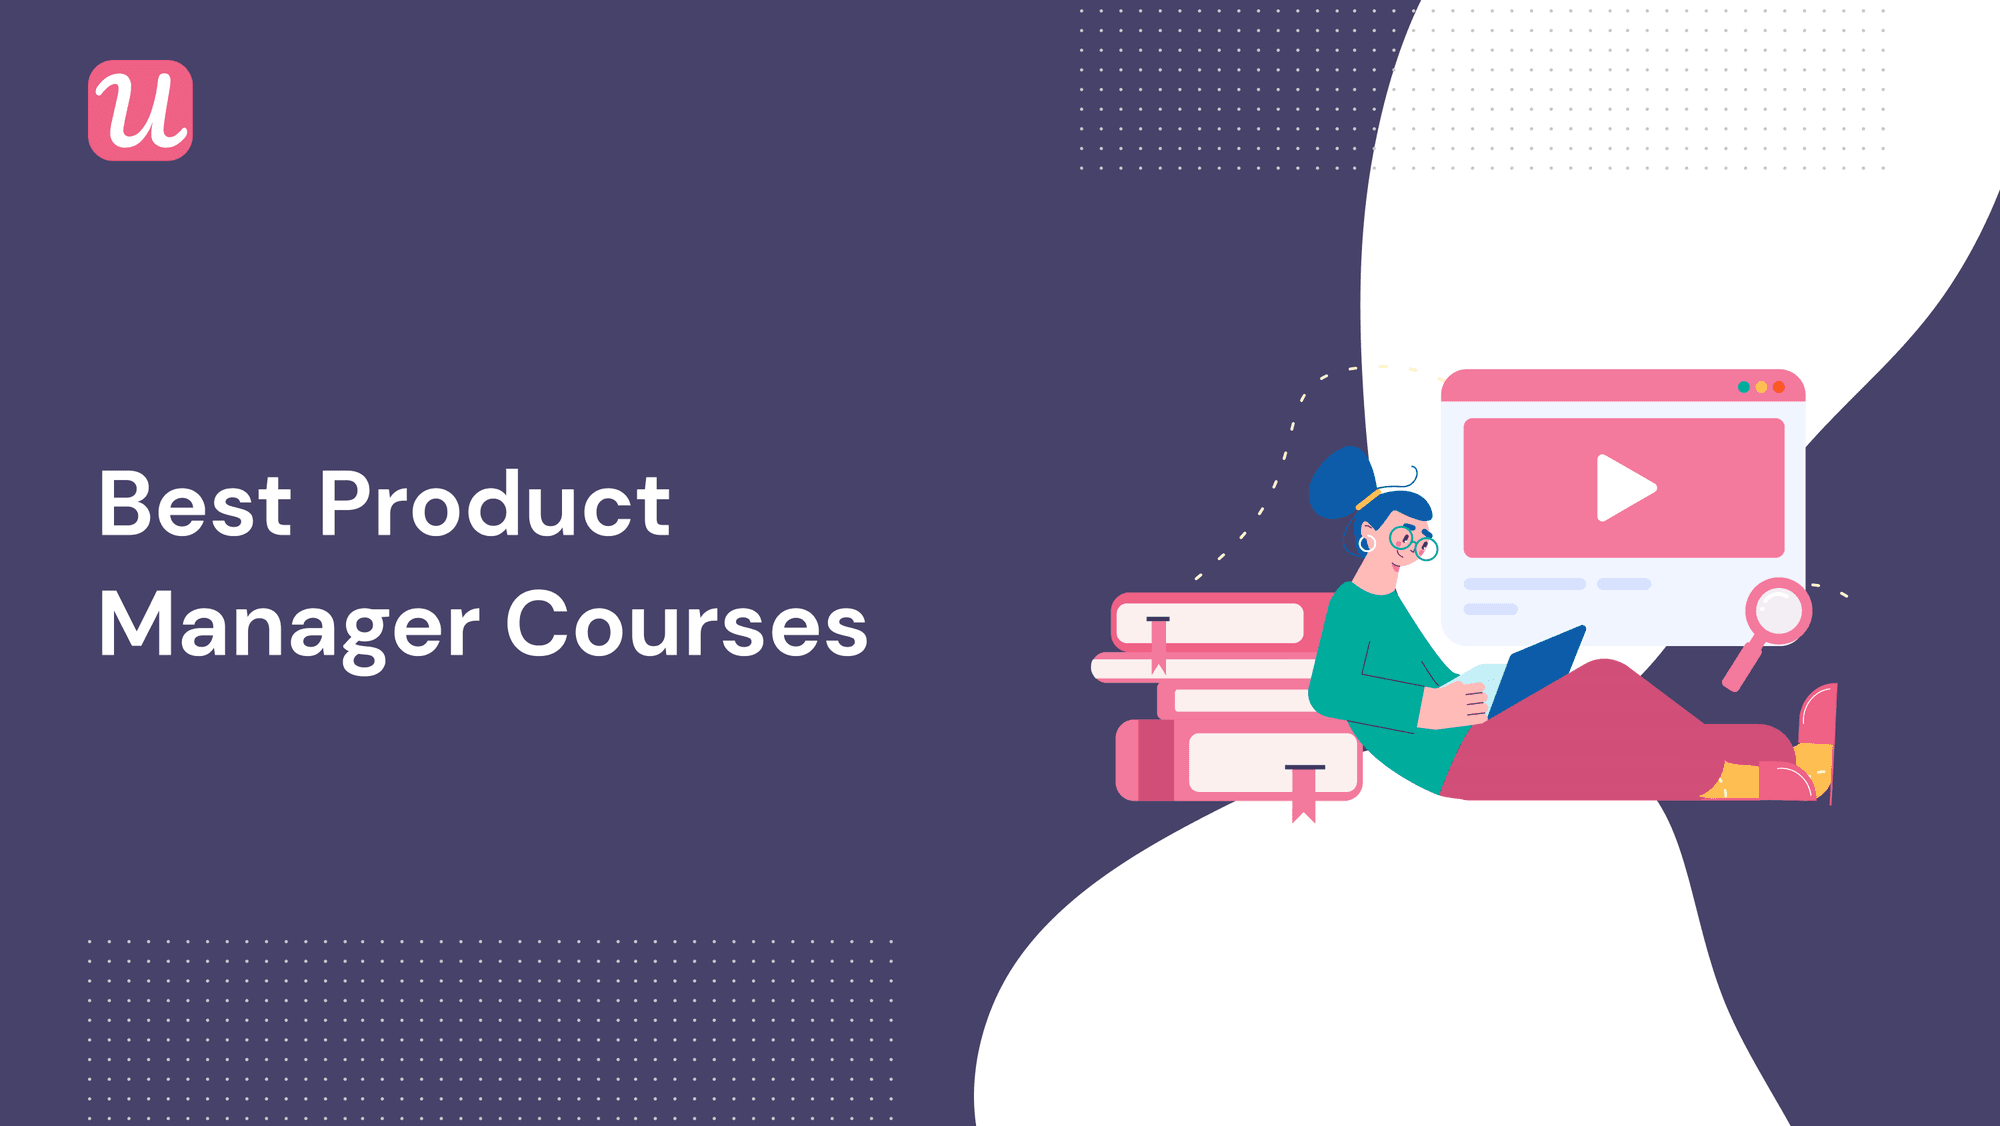 Best 20 Product Manager Courses in 20   For All Proficiency Levels